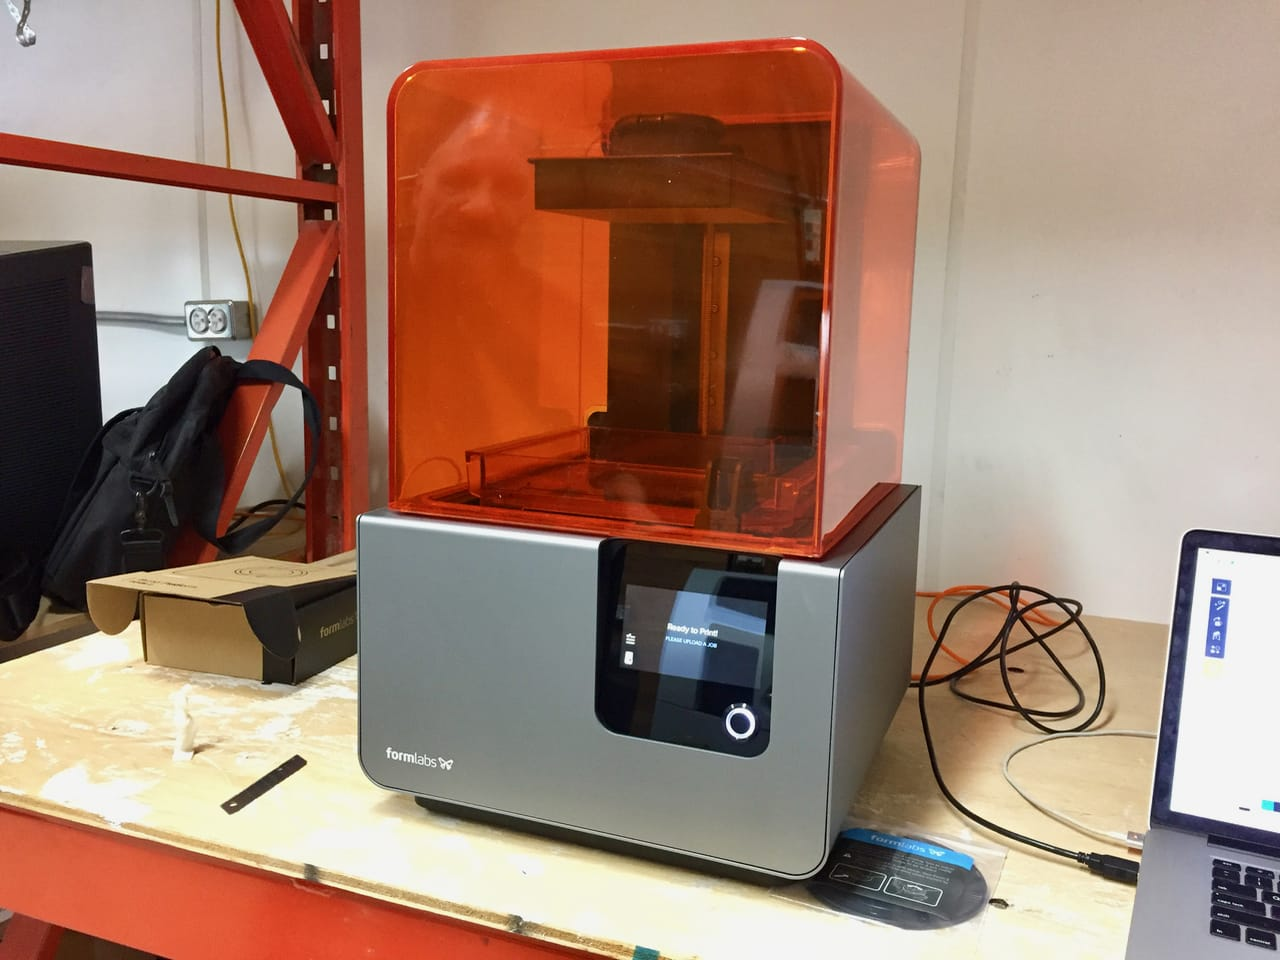 """The Formlabs Form 2 quickly shows """"Ready to Print"""" after powering up"""